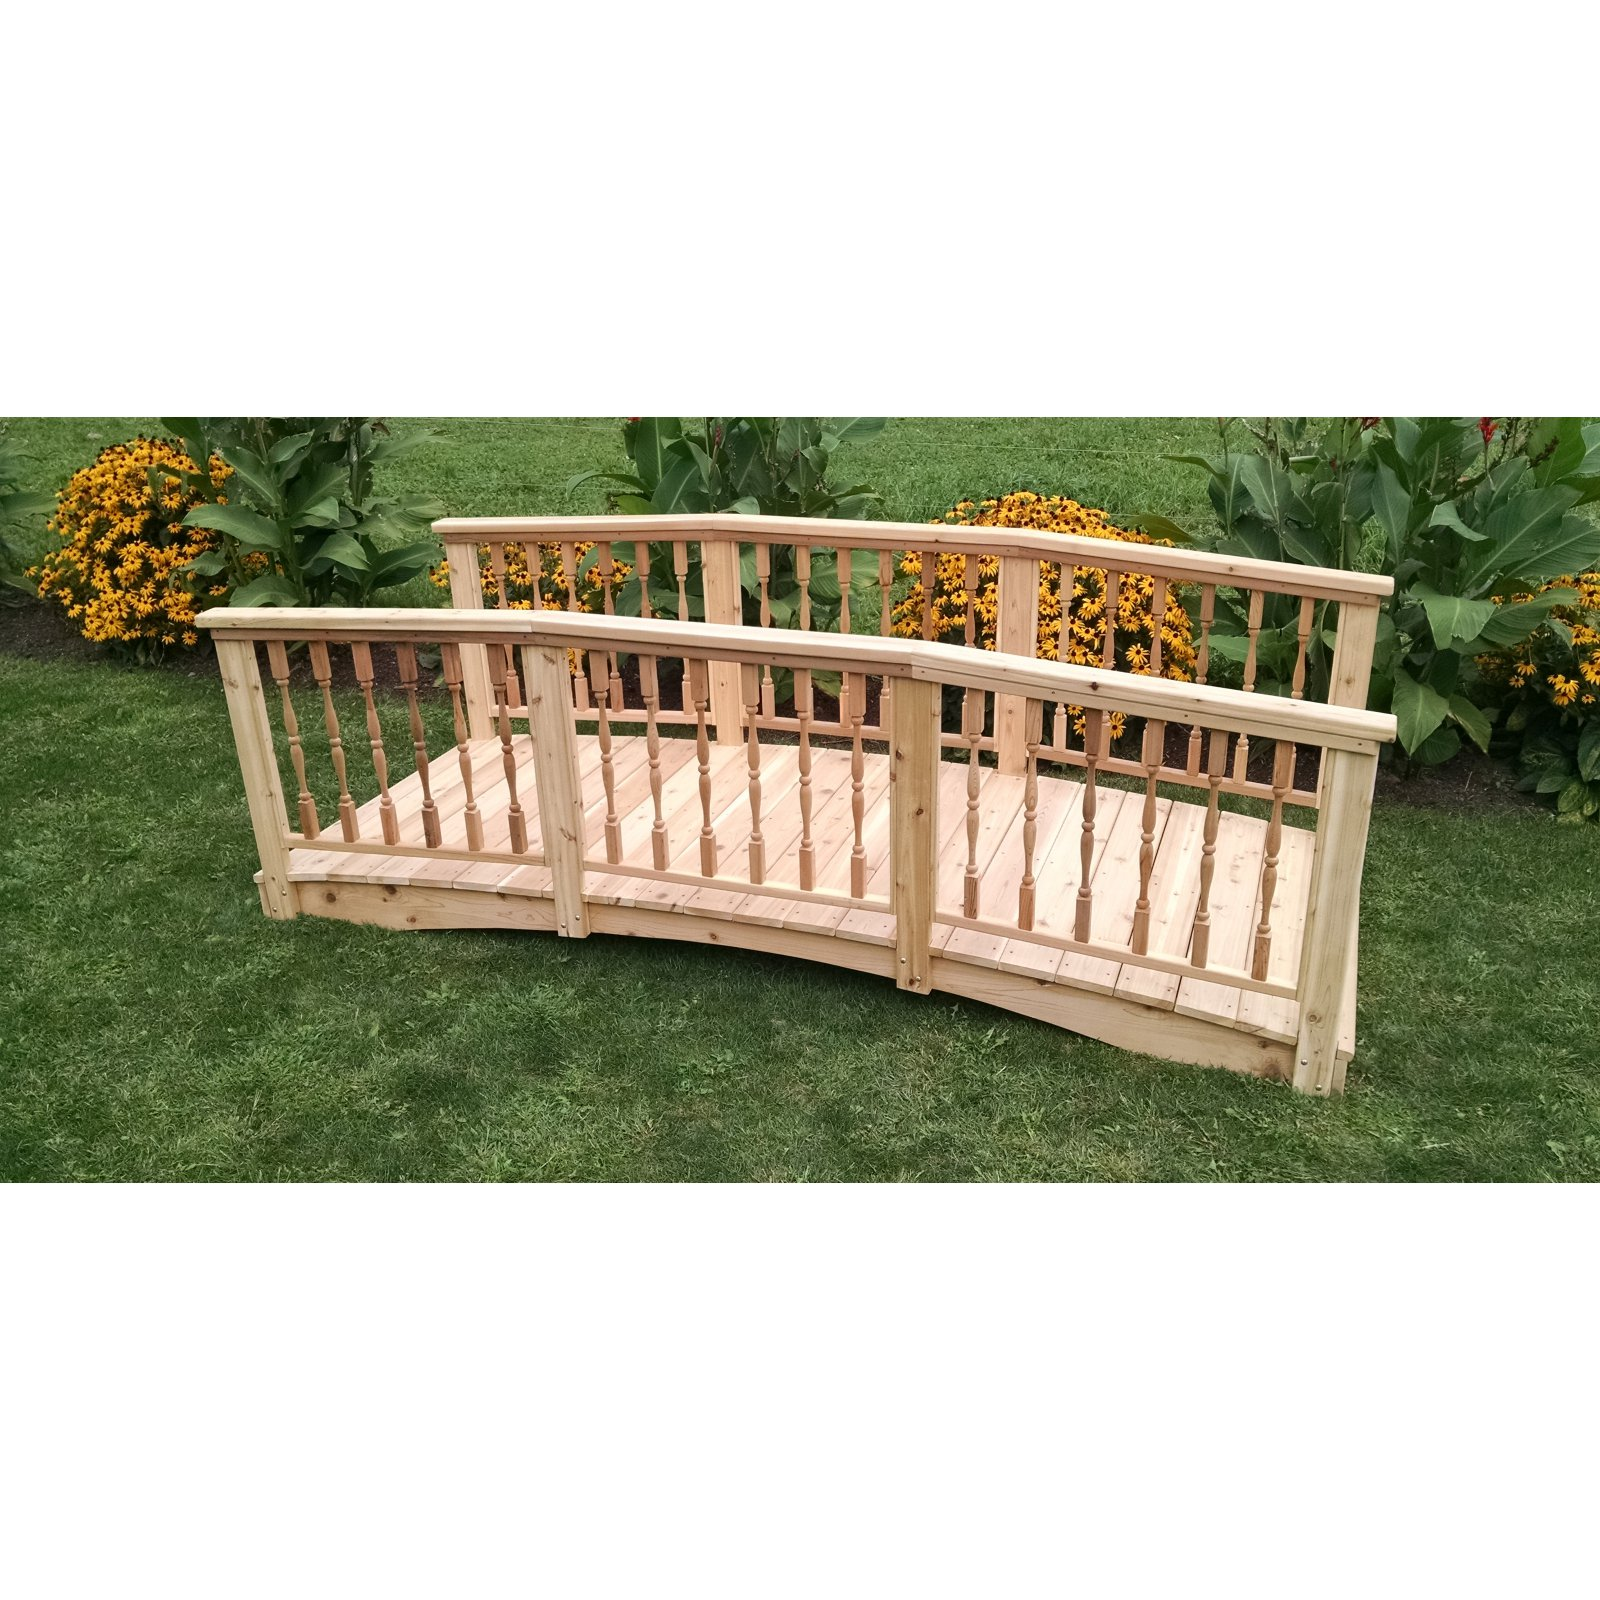 A and L Furniture Cedar Spindle Bridge